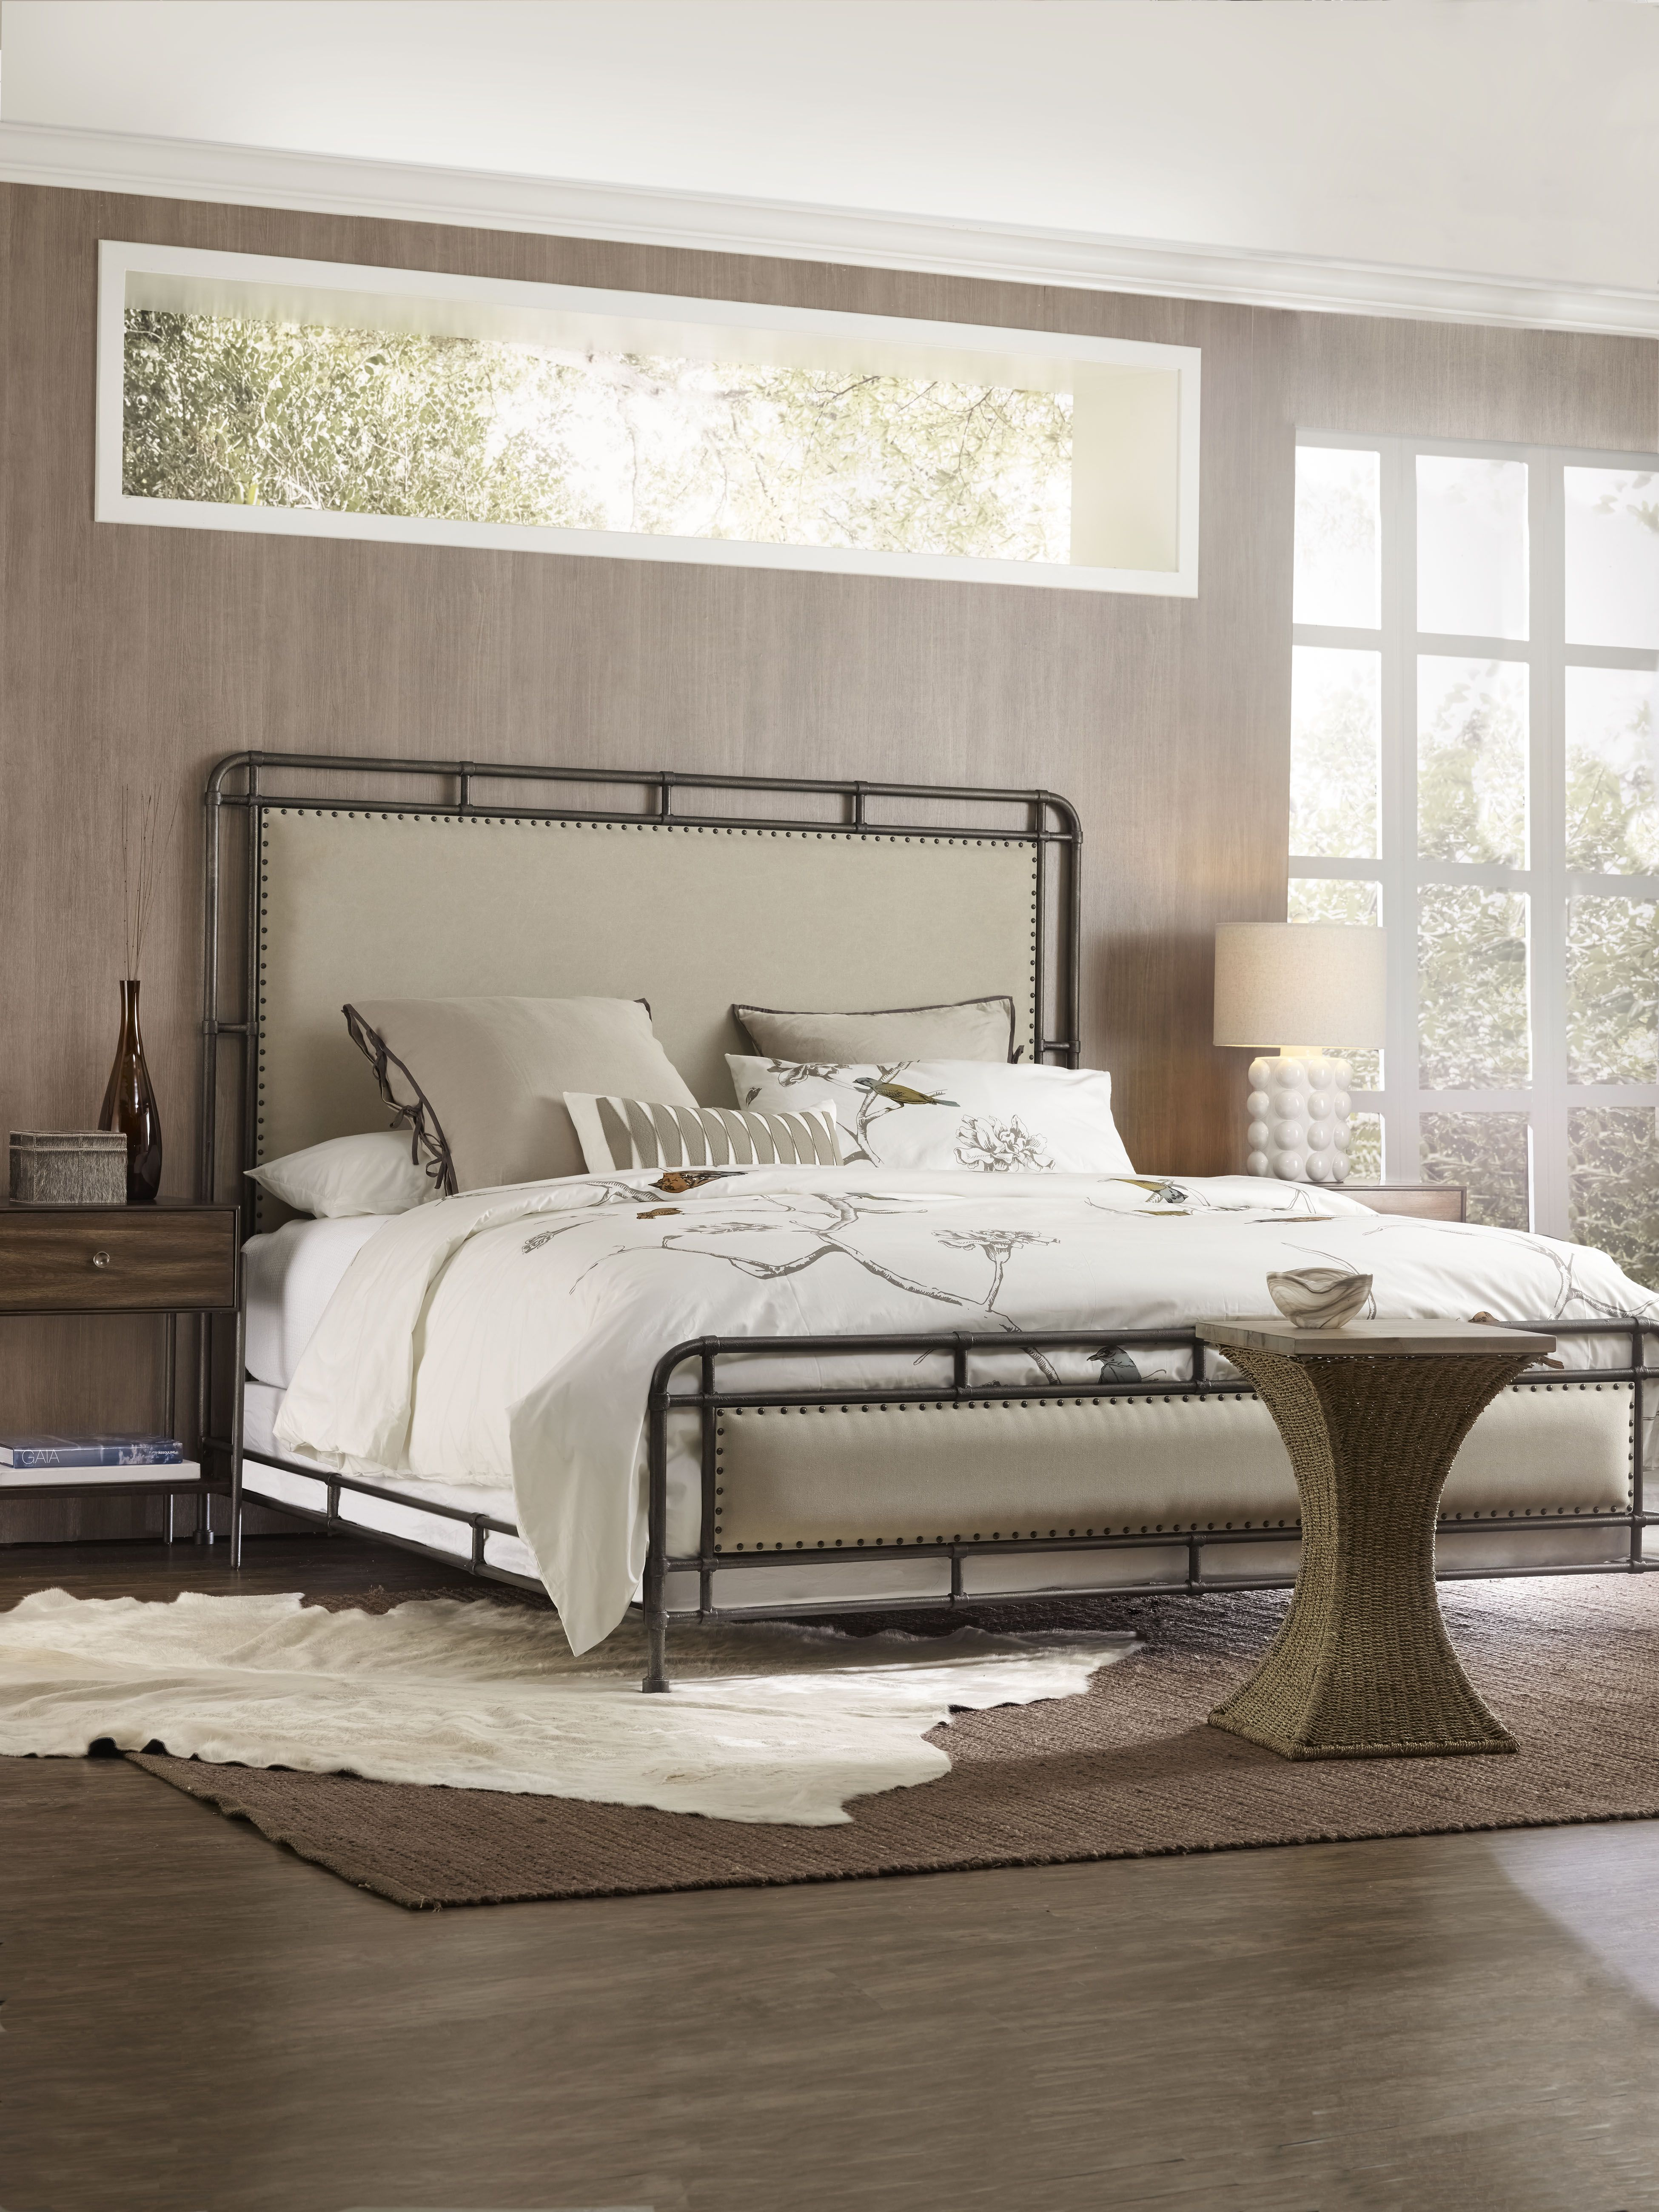 The Studio 7H SLUMBR Queen metal upholstered bed